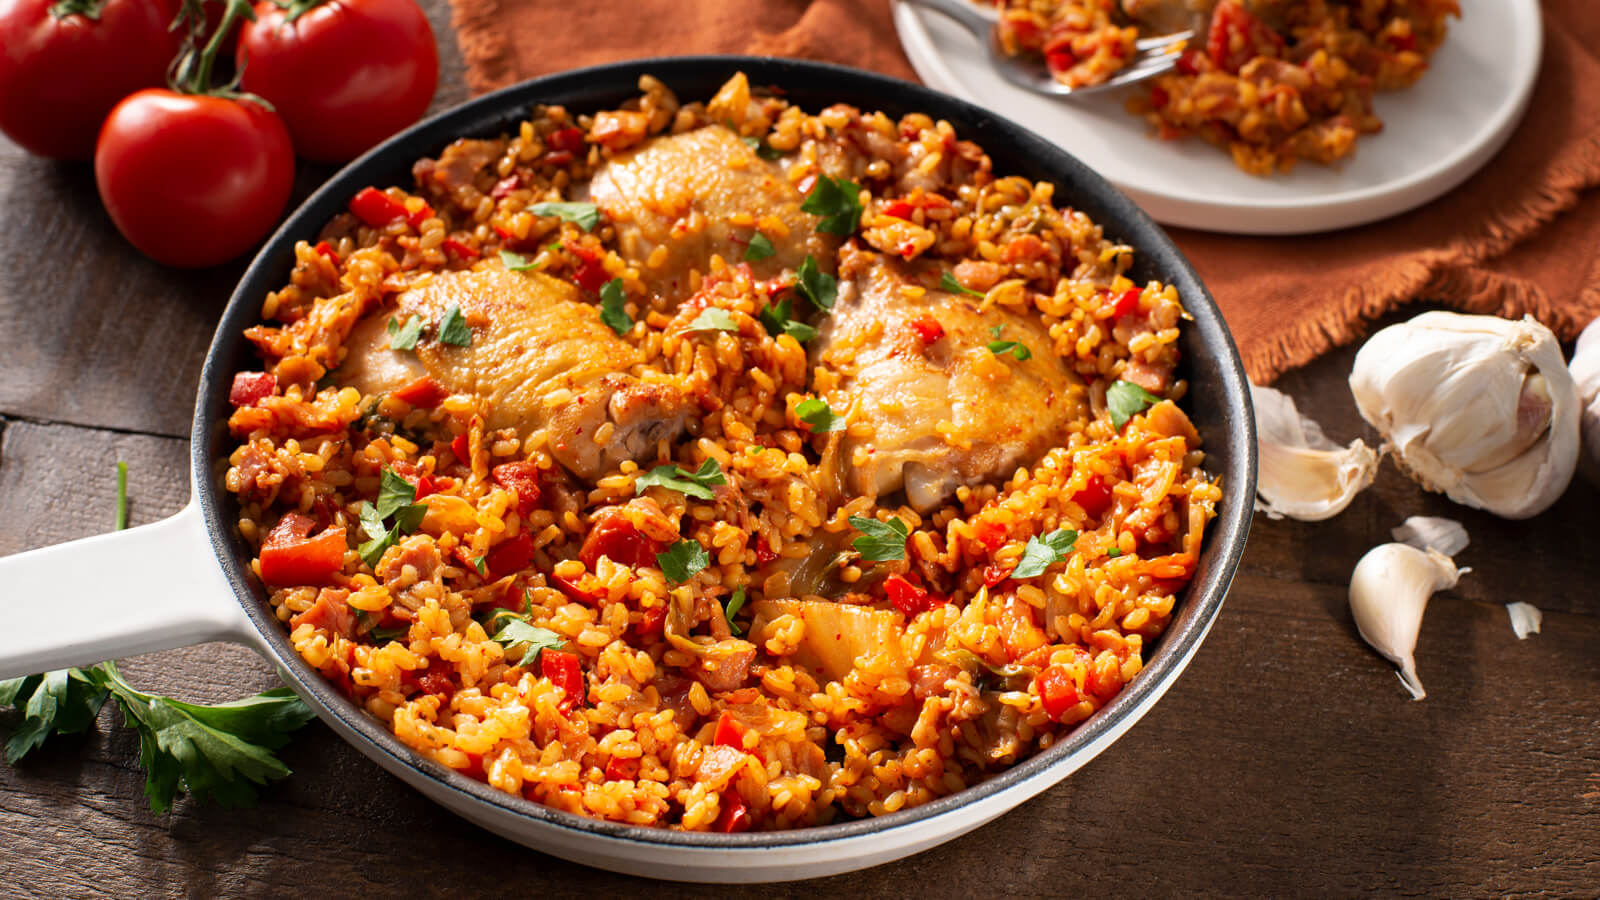 Bacon and Kimchi Paella with Chicken